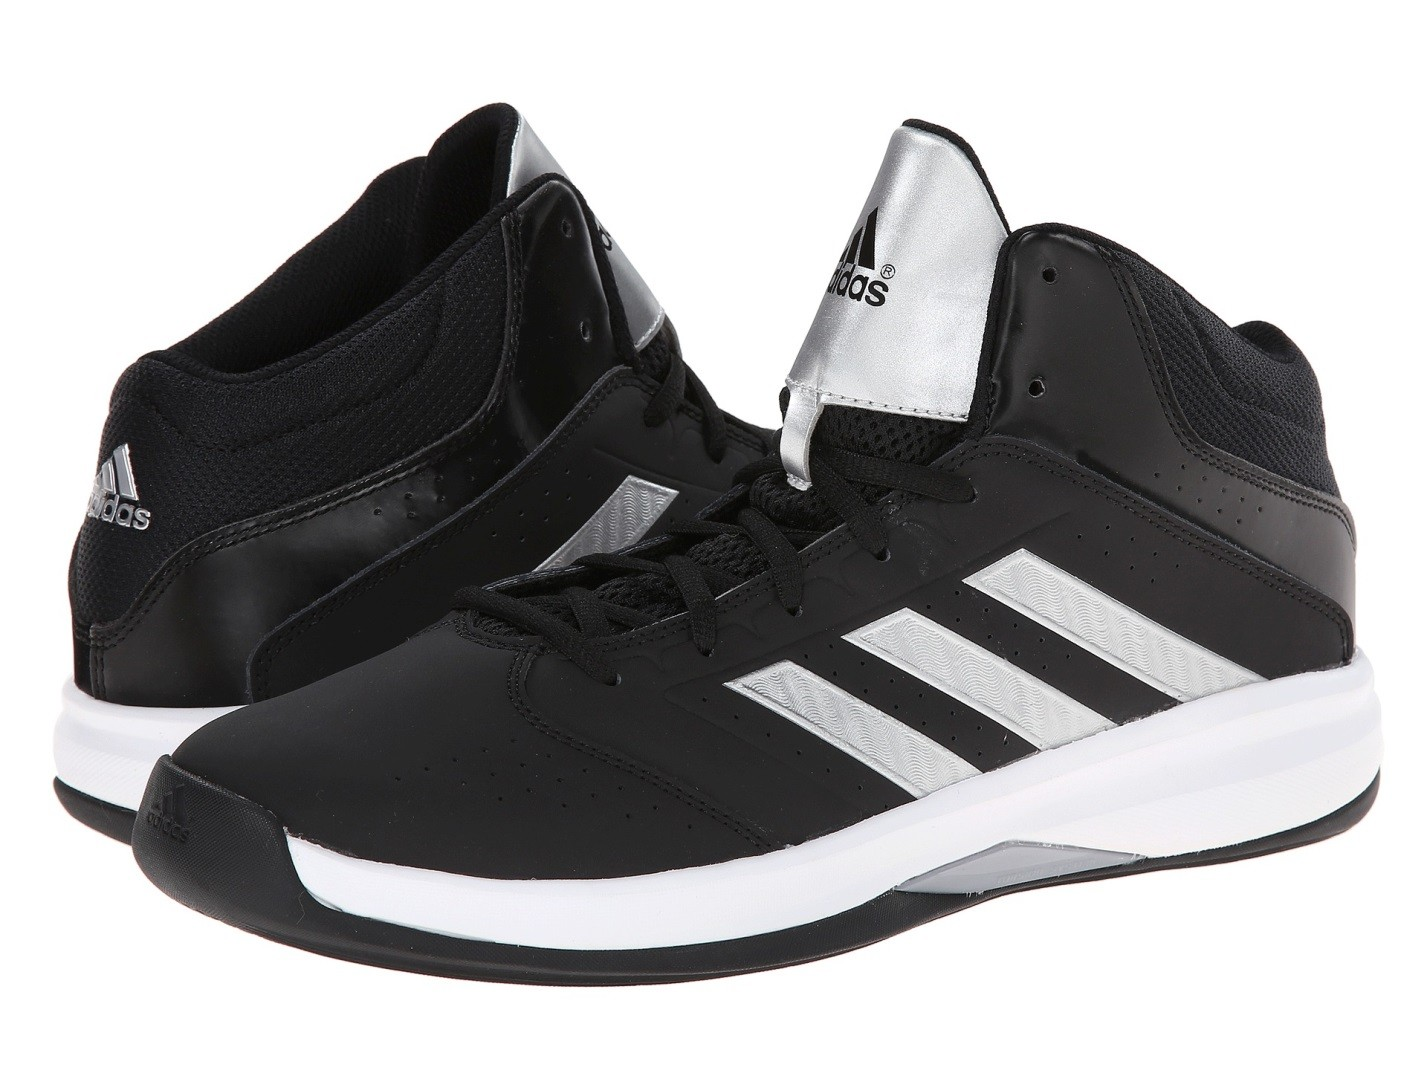 Adidas Isolation 2 Mid Black